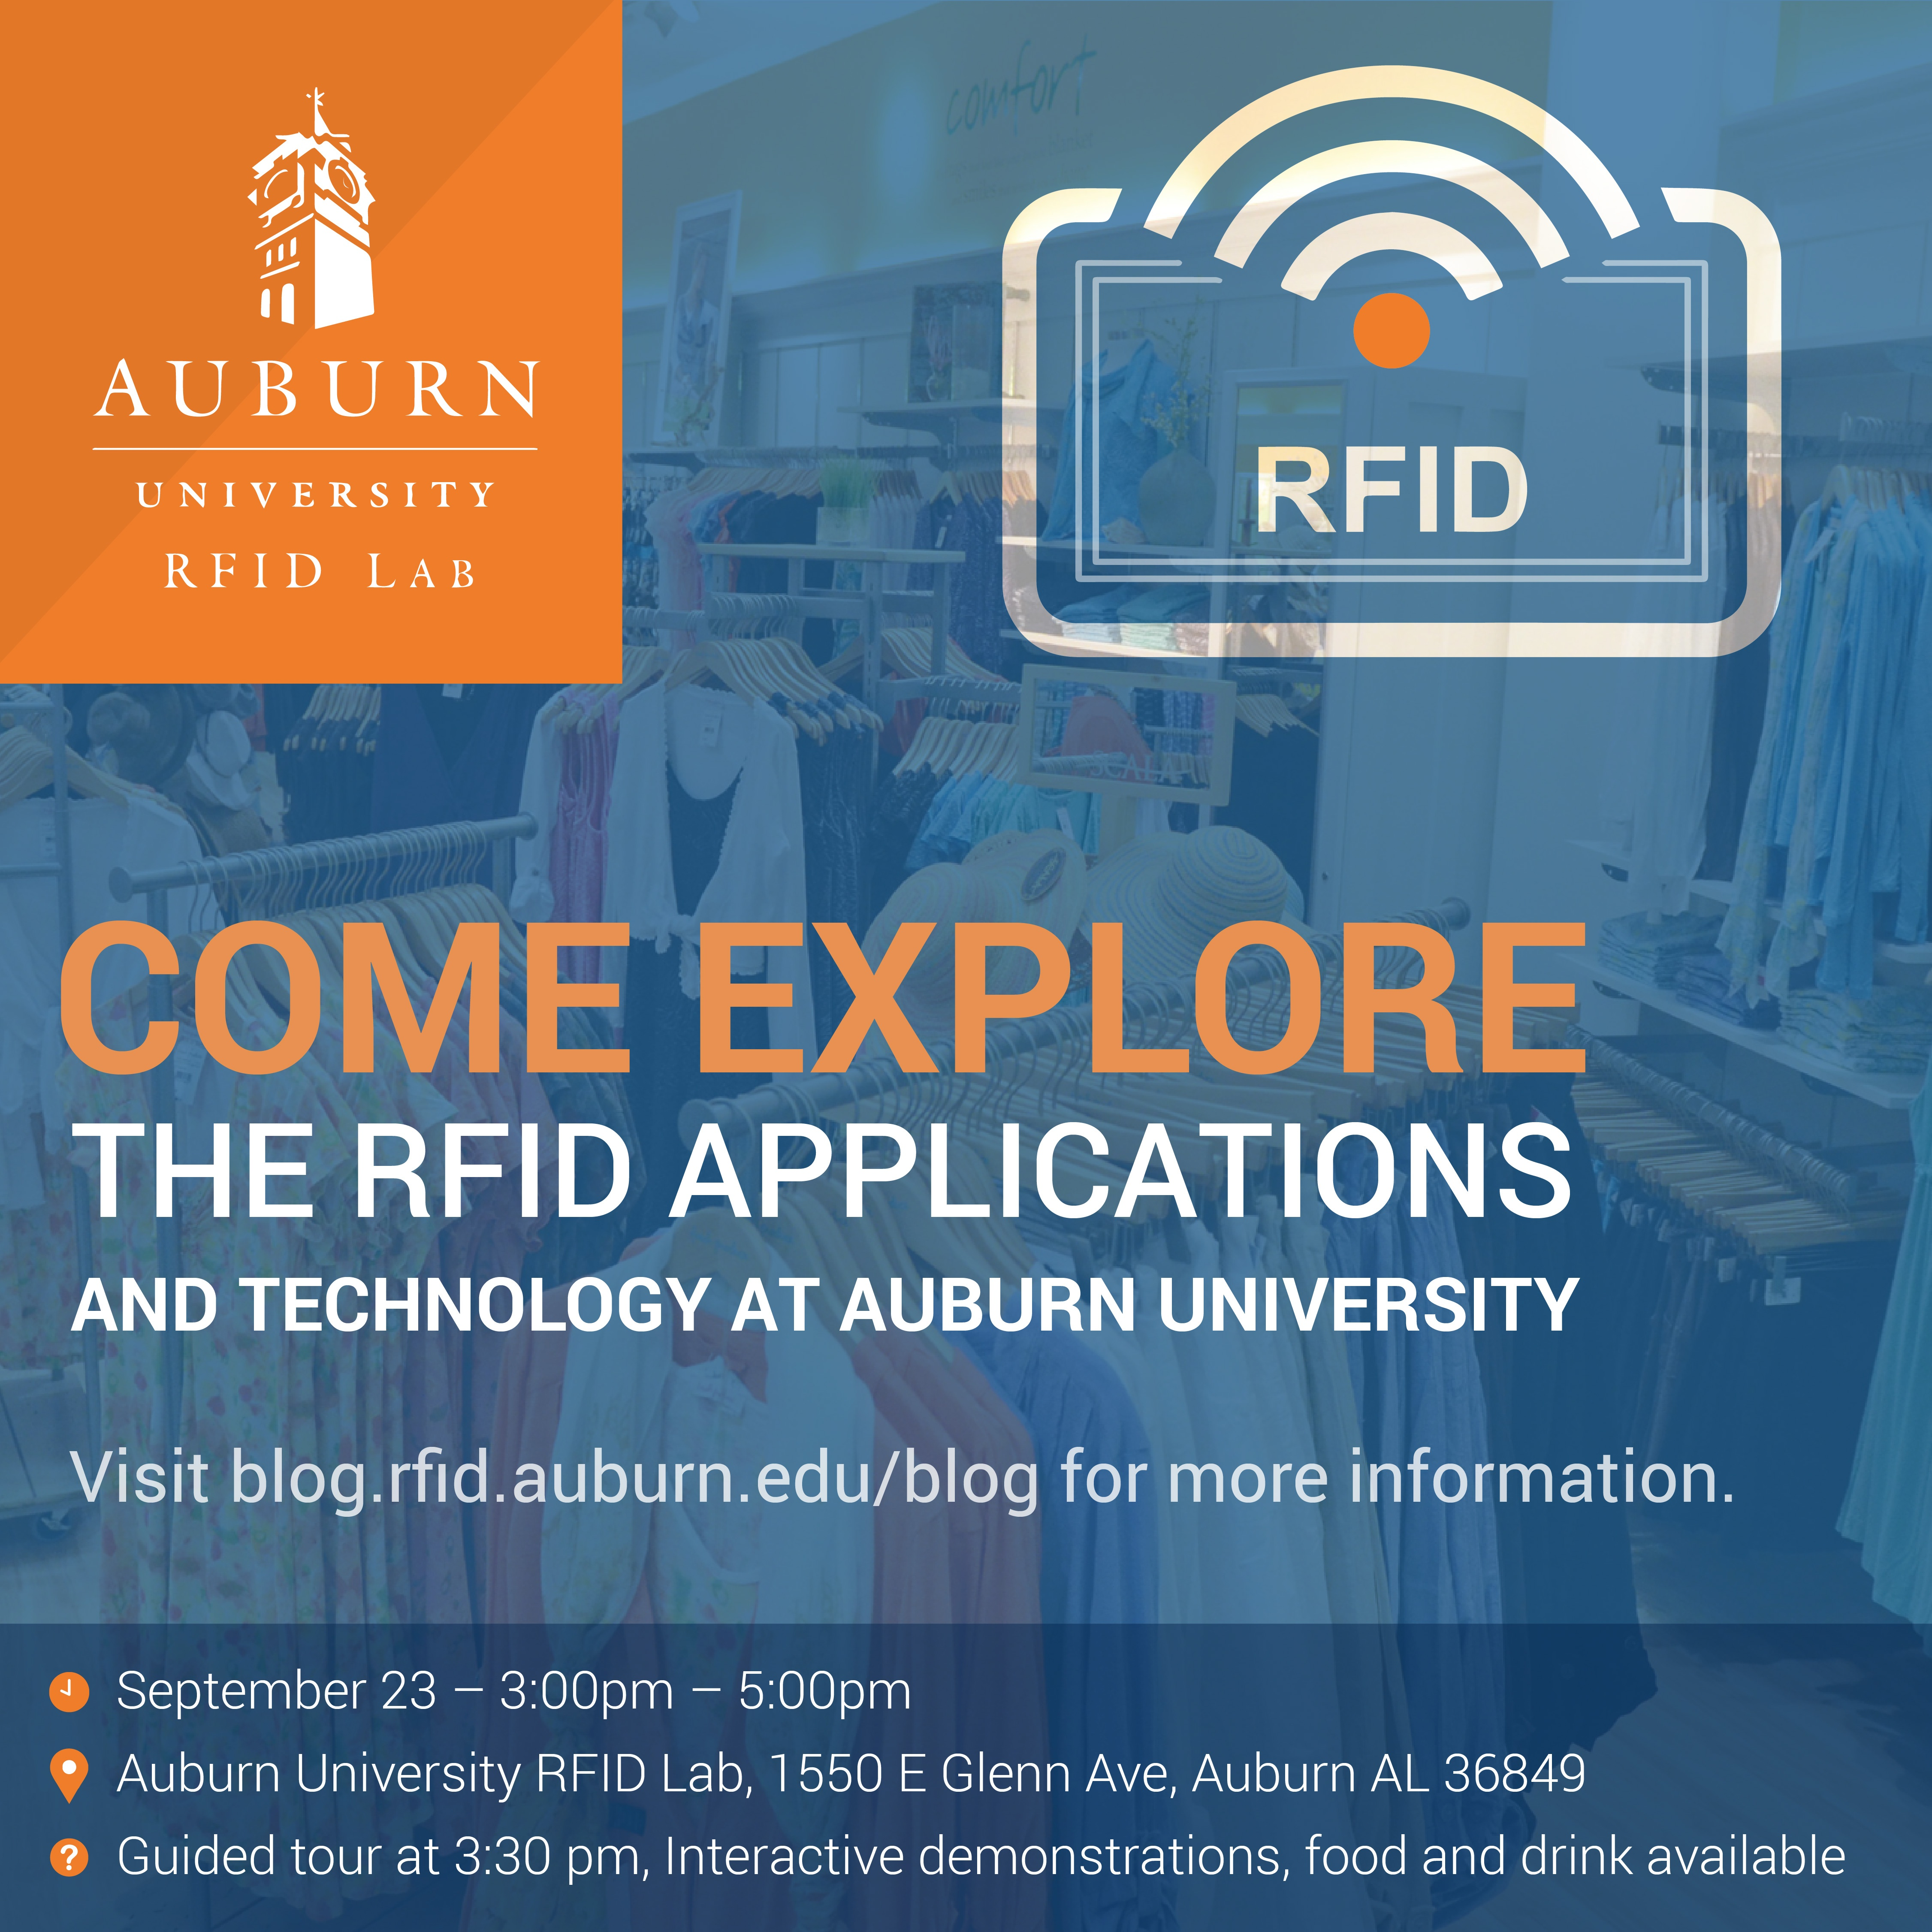 Explore The Auburn University RFID Lab